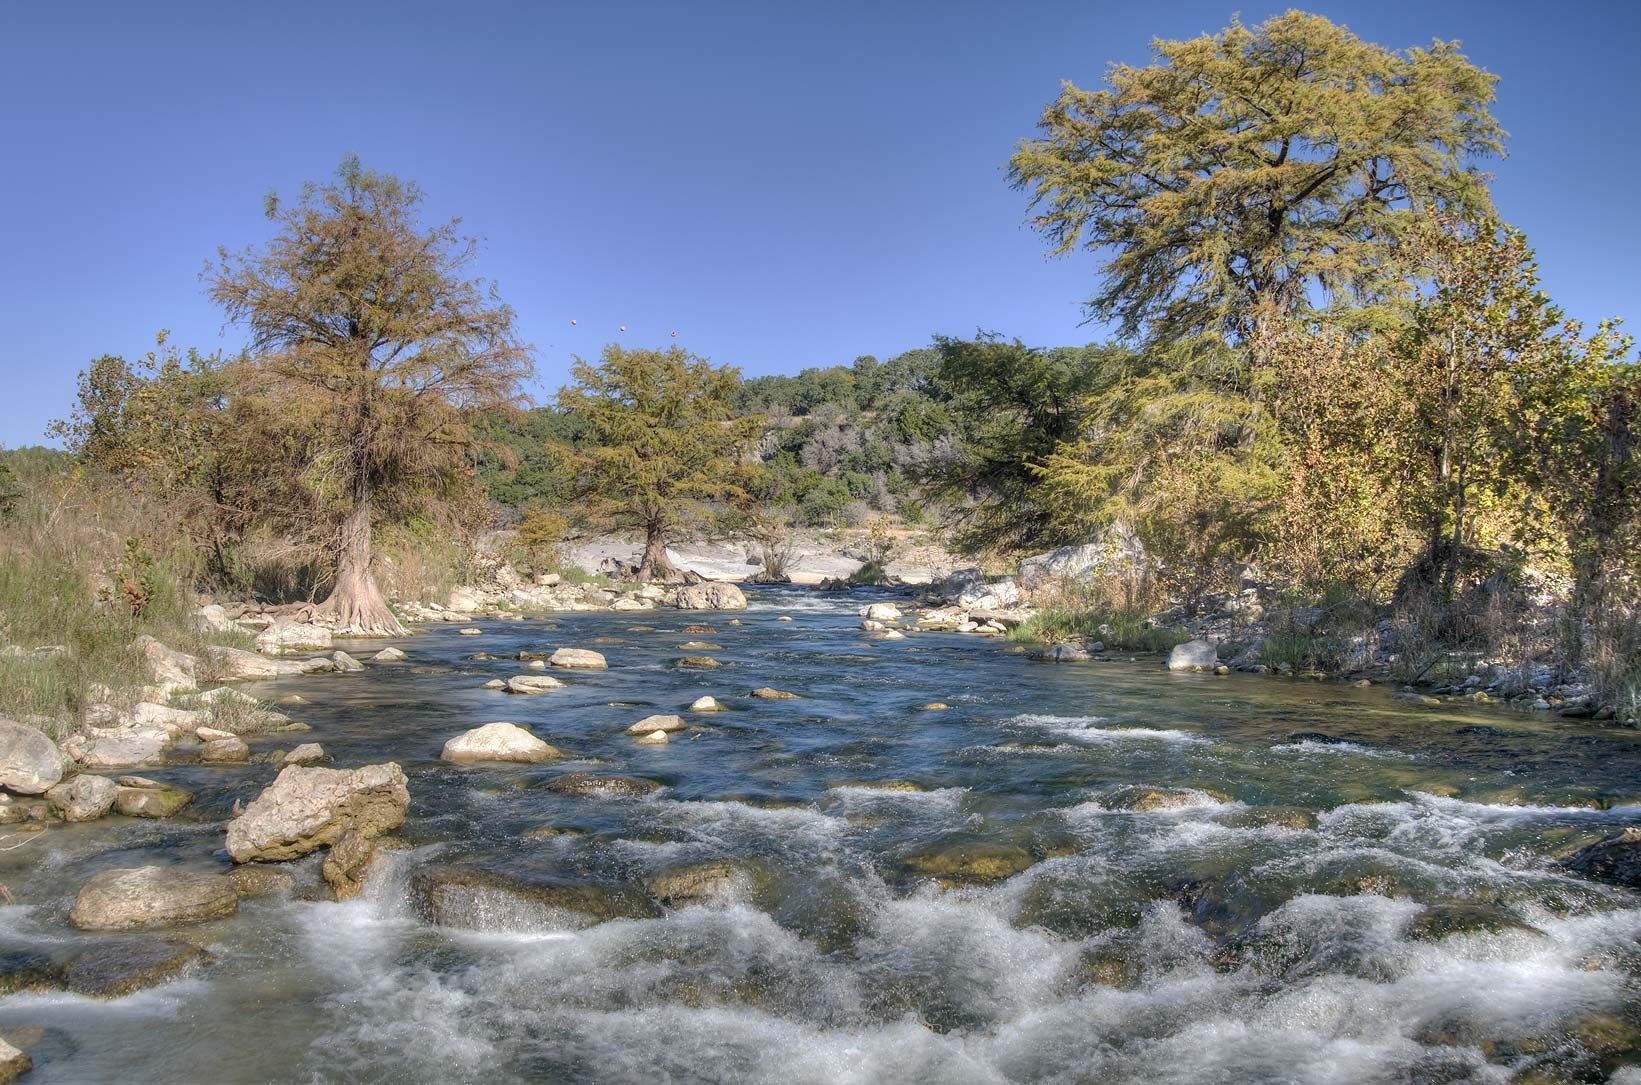 Pedernales river below the falls. Johnson City, Texas